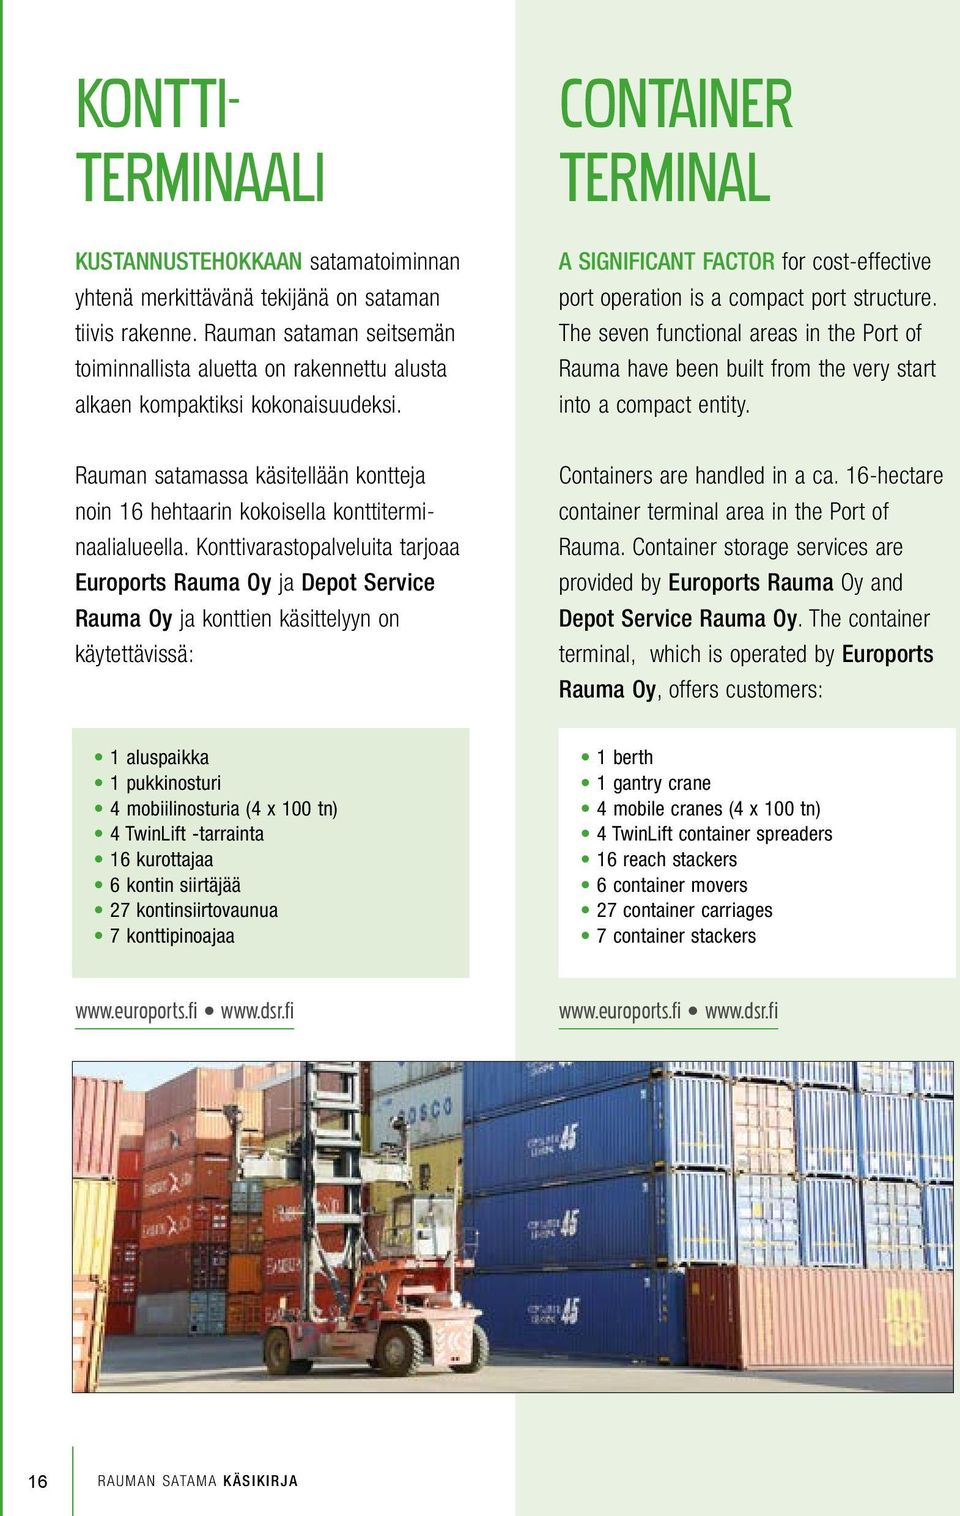 CONTAINER TERMINAL A SIGNIFICANT FACTOR for cost-effective port operation is a compact port structure.